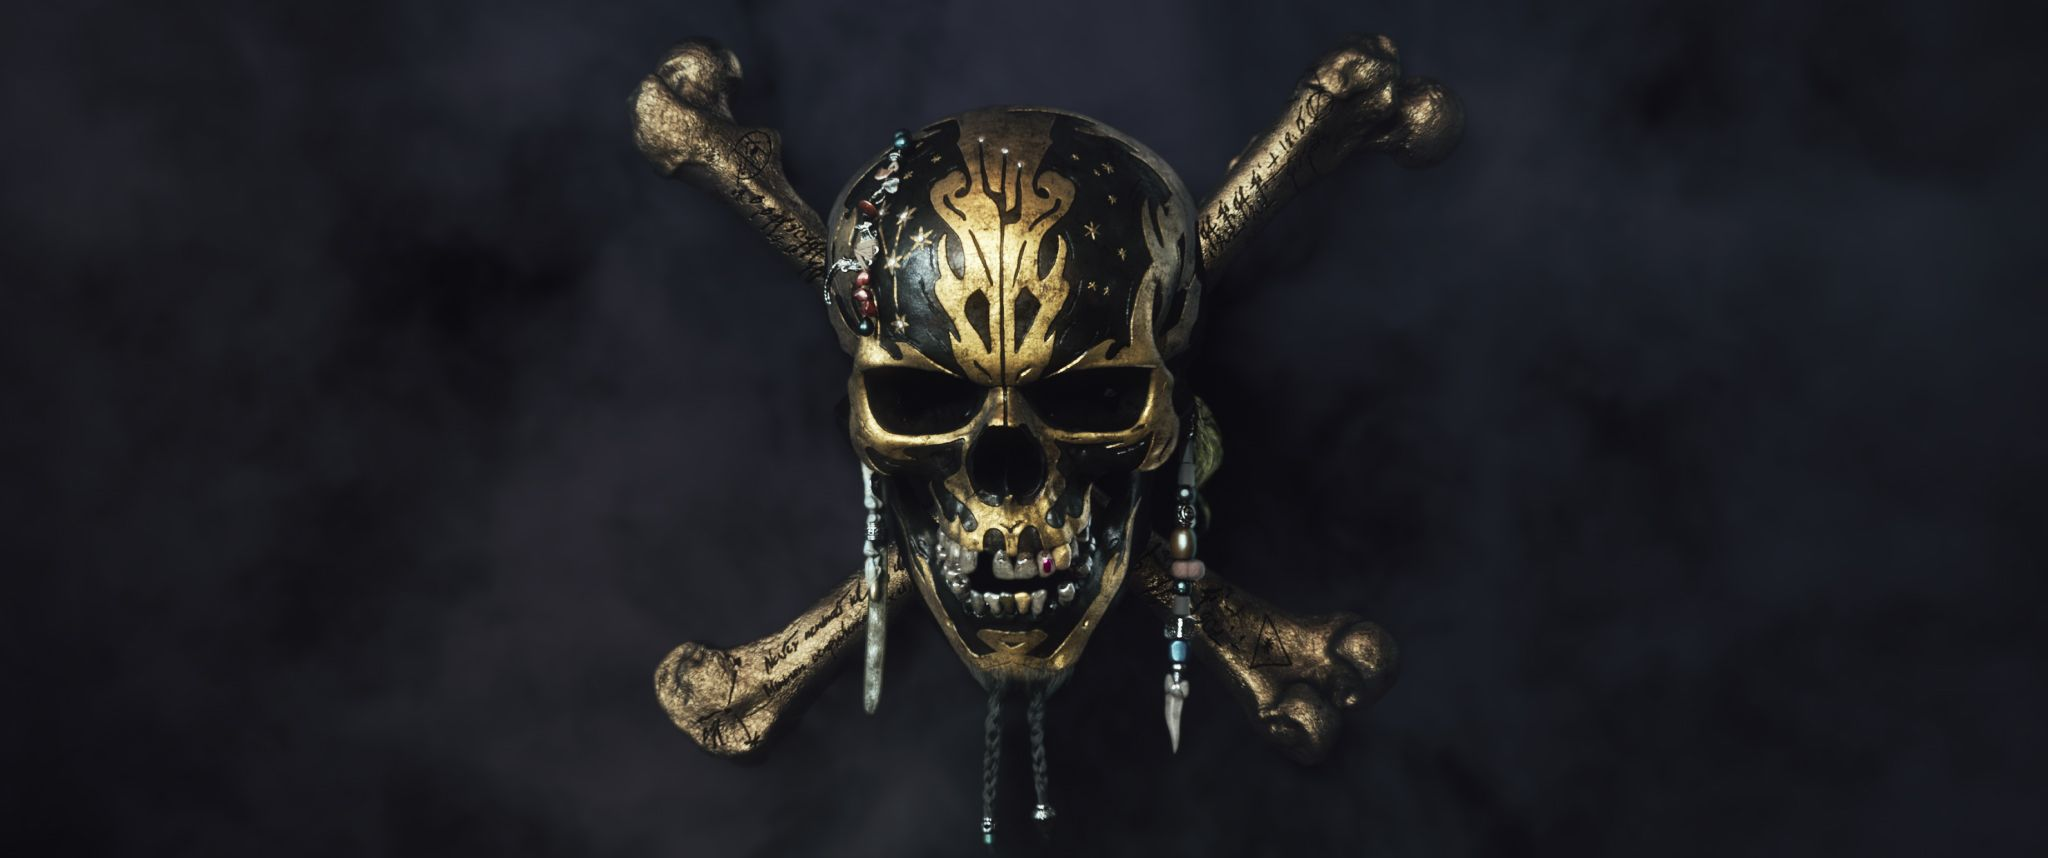 Pirates 5 after credits scene explained collider buycottarizona Image collections